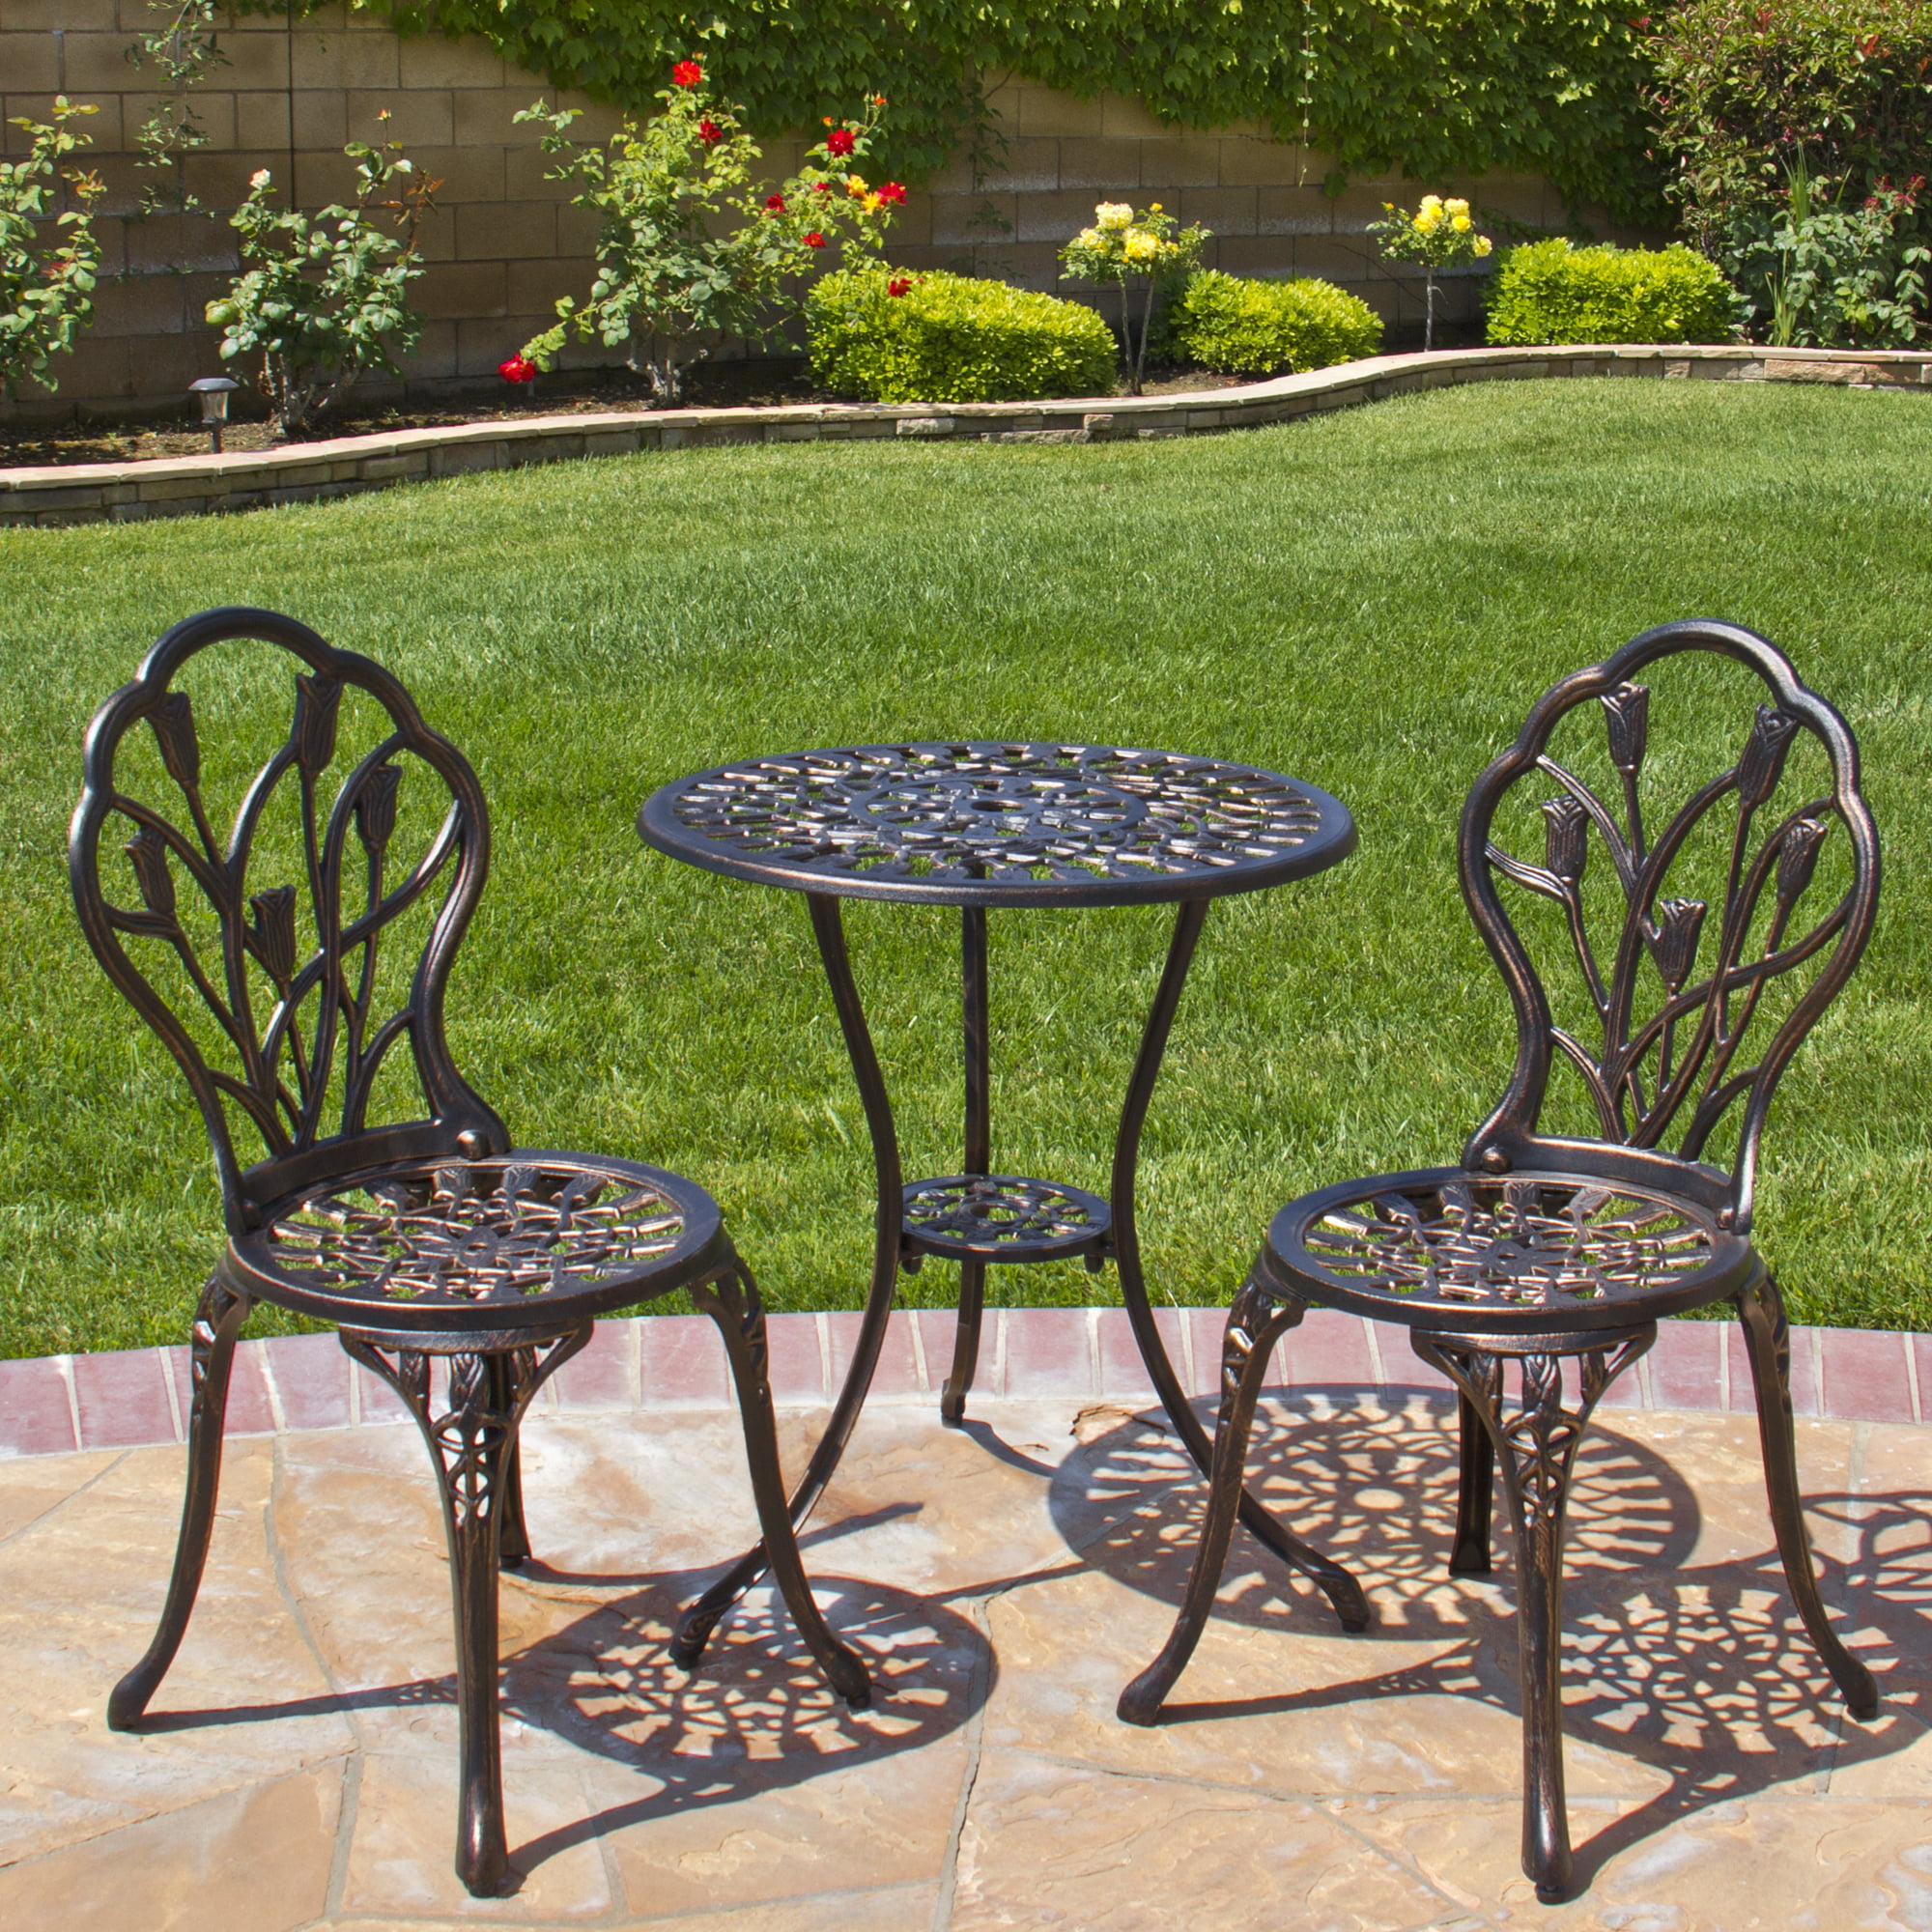 Best Choice Products Cast Aluminum Patio Bistro Furniture Set in Antique Copper by